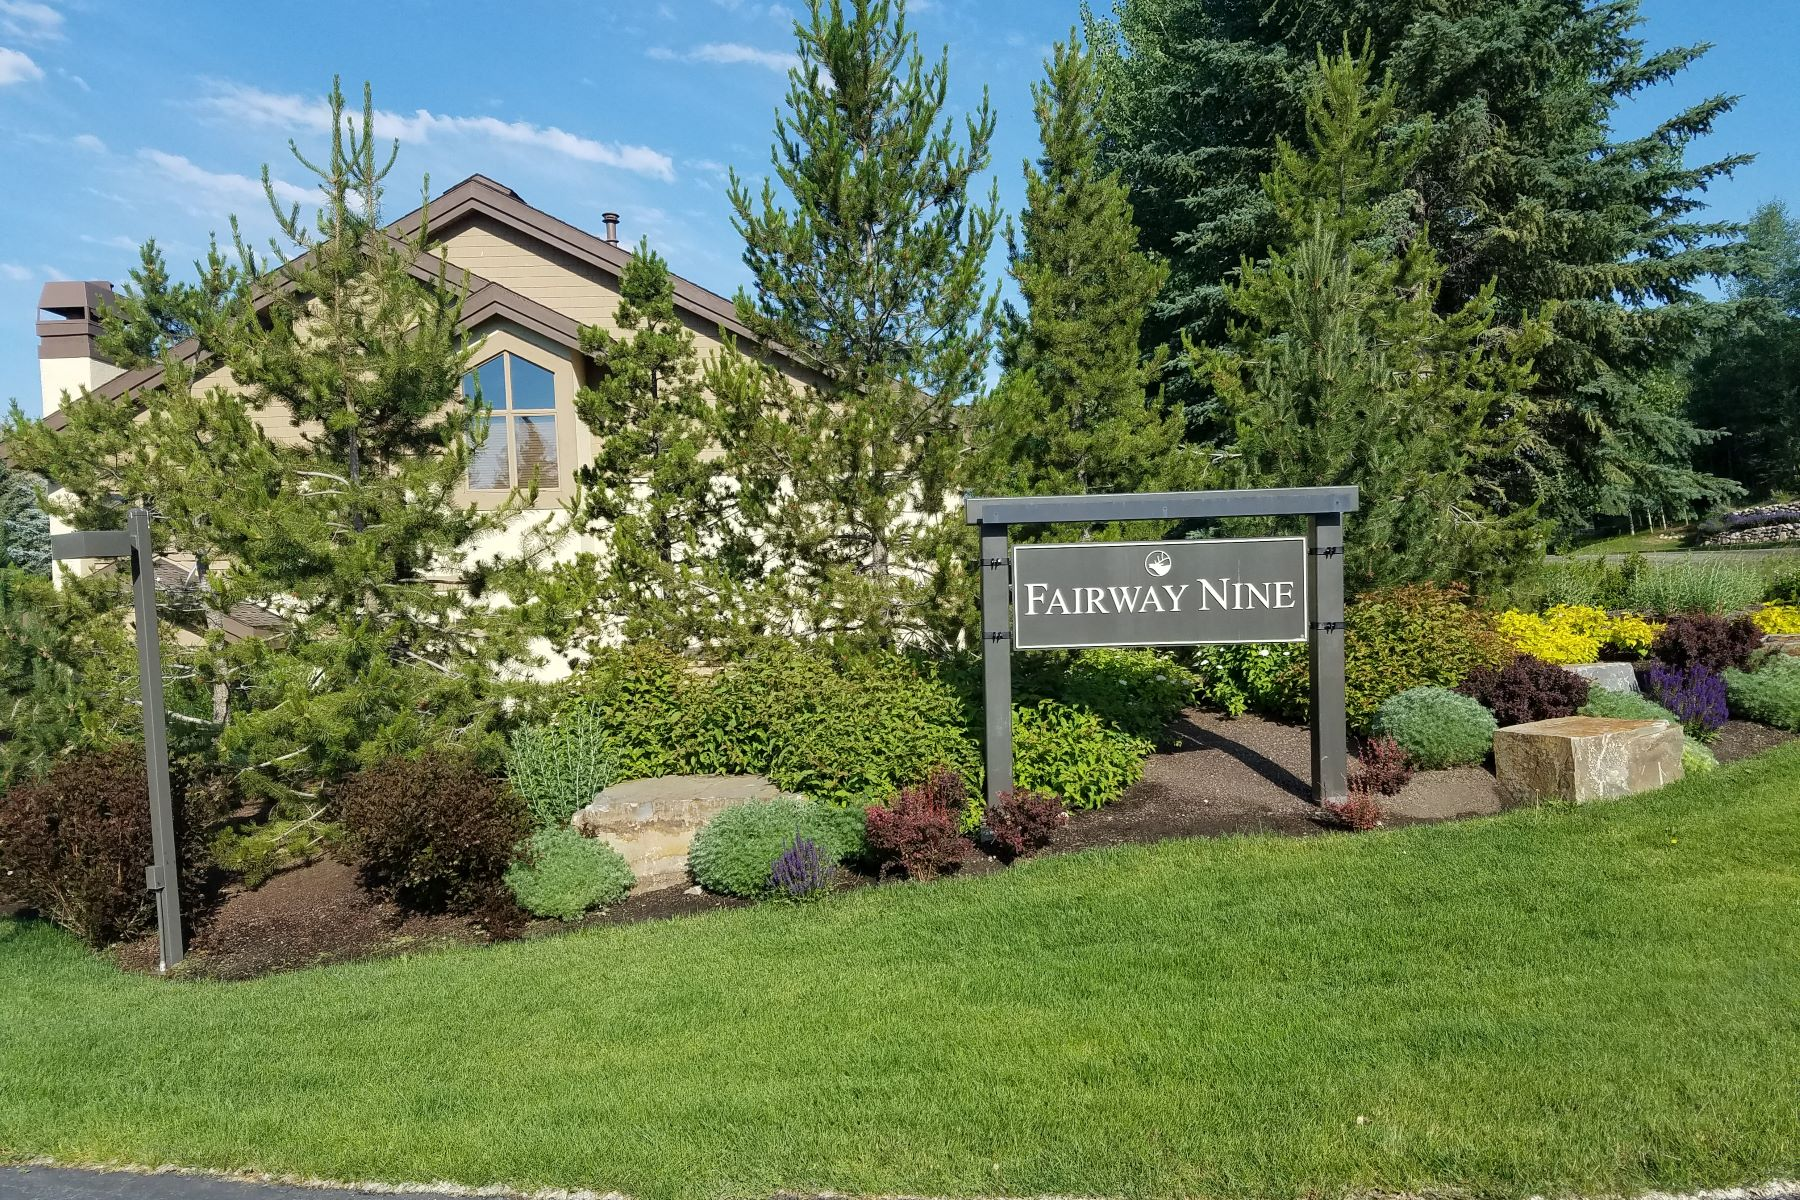 Condominiums for Sale at Desirable Fairway Nine Condo 4312 Fairway Nine Condo Sun Valley, Idaho 83353 United States